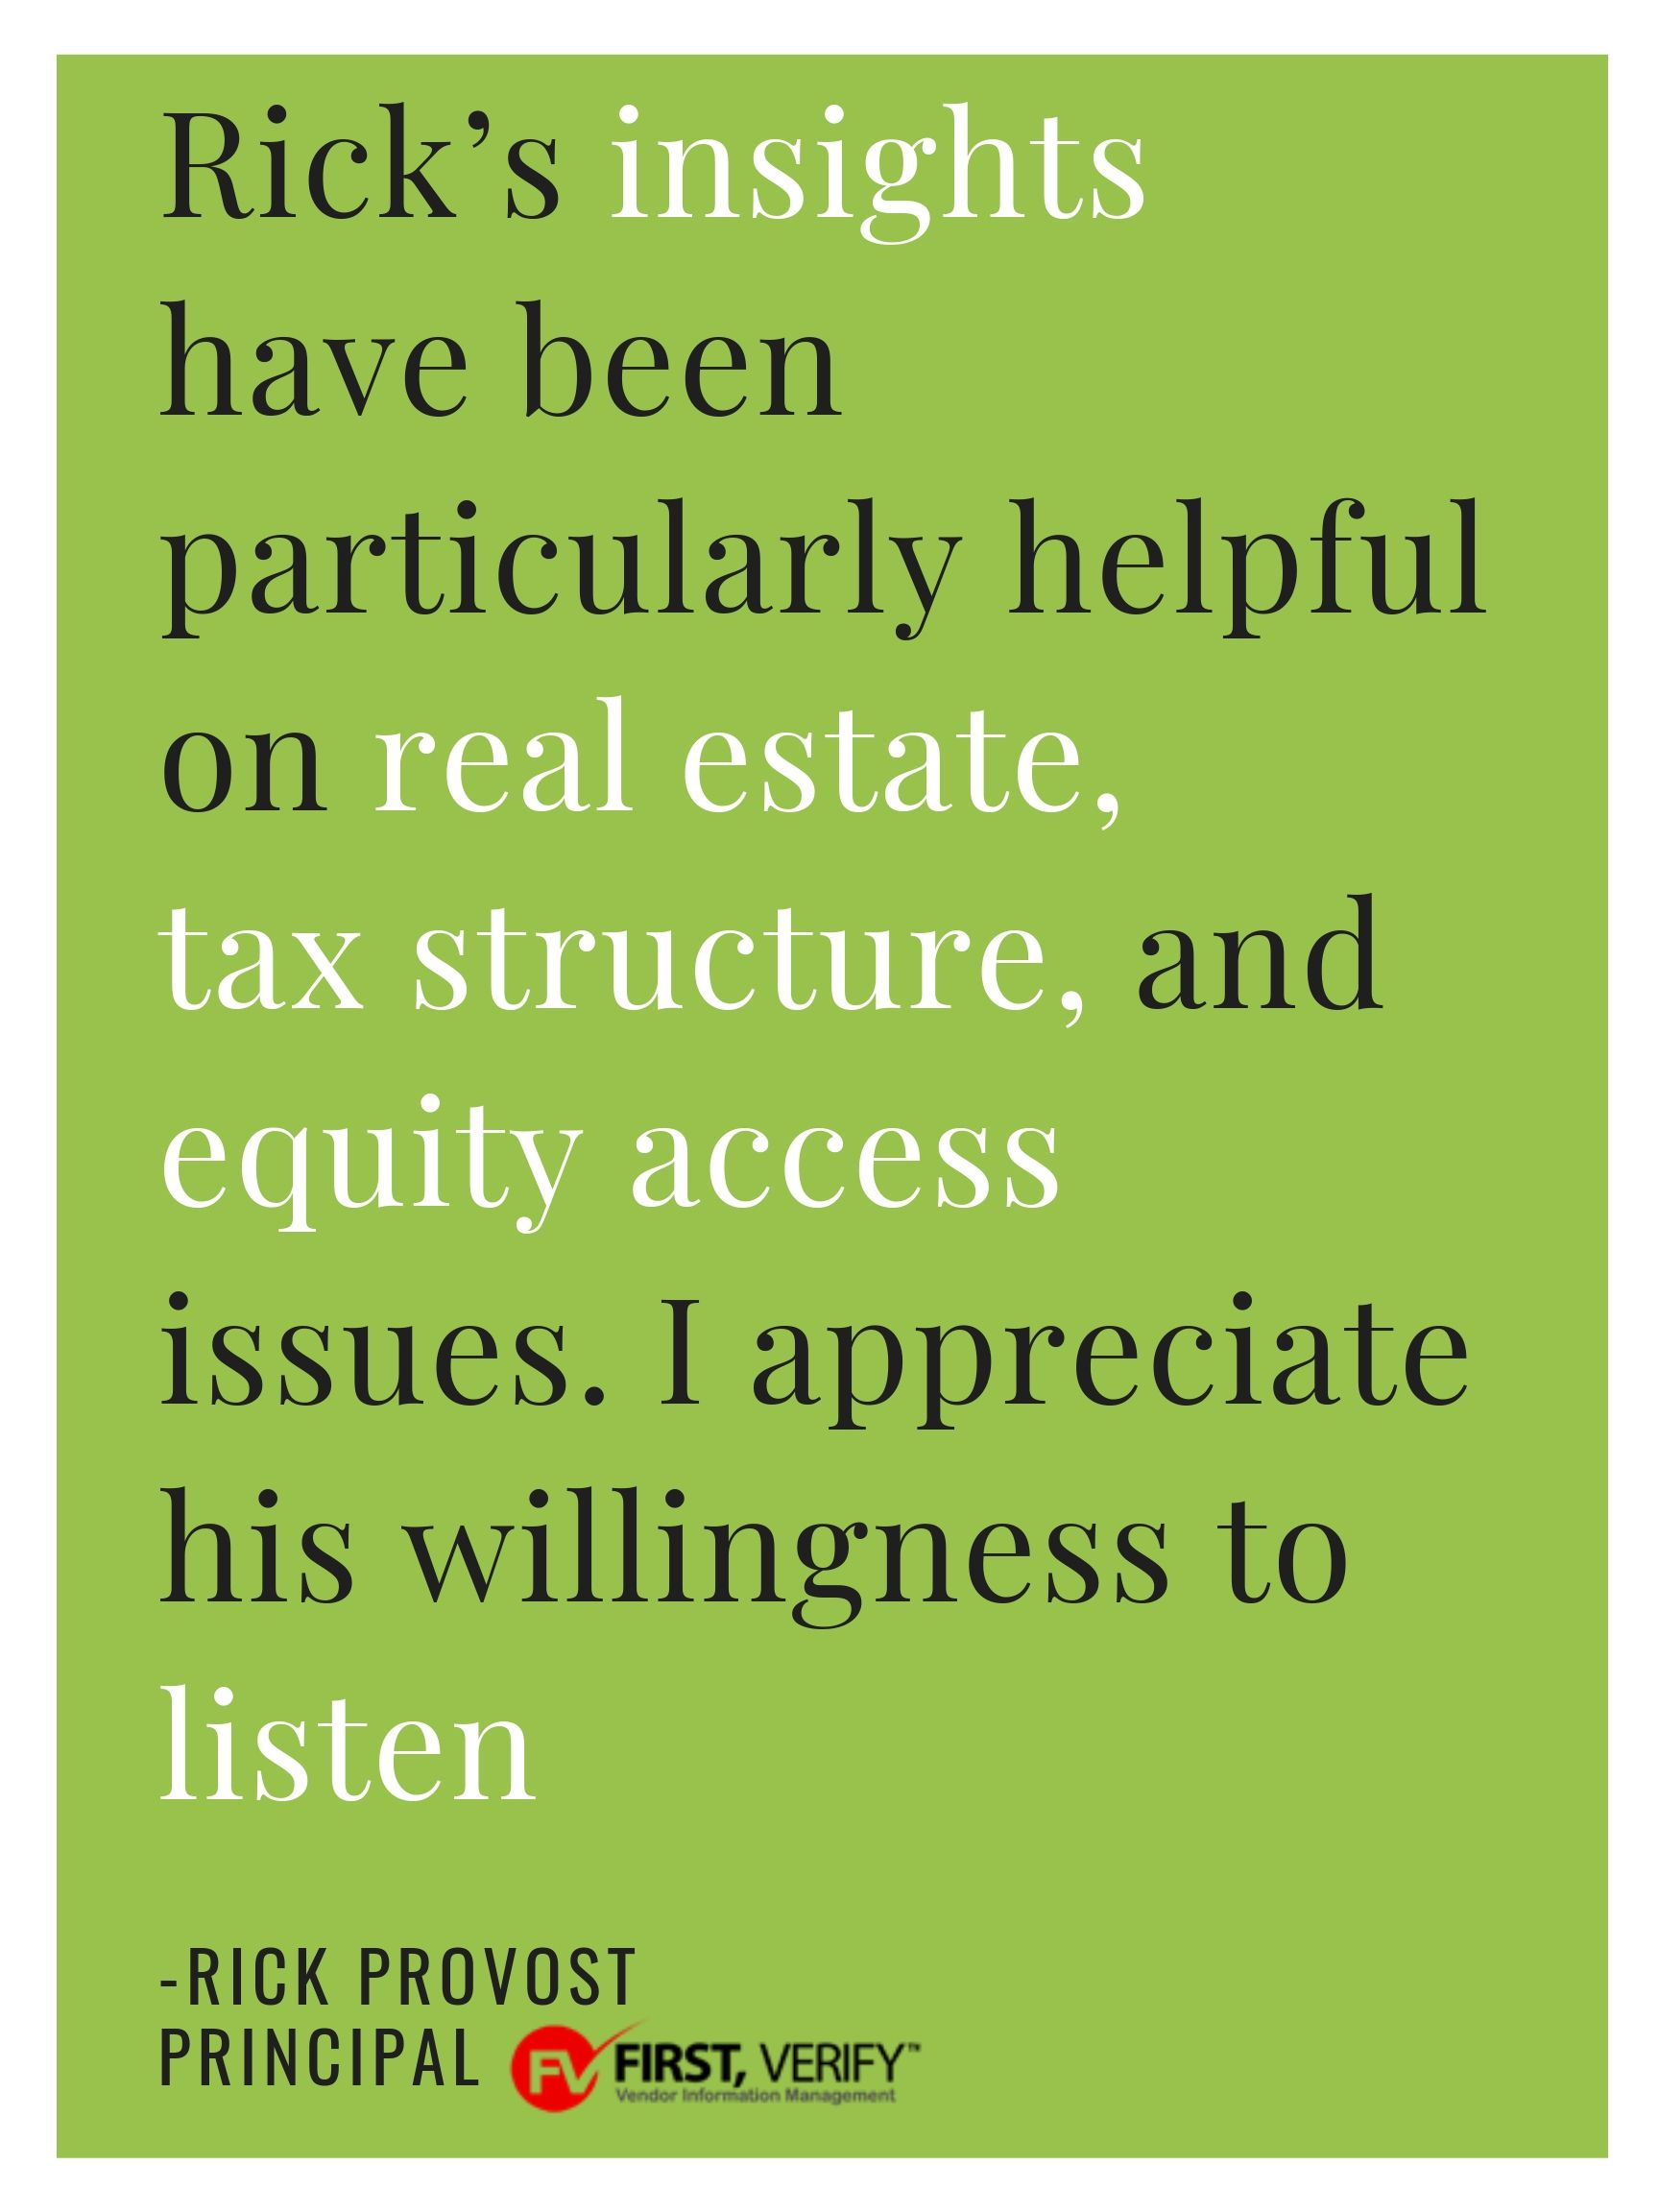 """""""For over 20 years, Rick Chess has provided me with sound business and legal advice. My current and previous companies have faced complex, and often unique, challenges in the competitive US and international markets. Rick's insights have been particularly helpful on real estate, tax structure, and equity access issues. I appreciate his willingness to listen. He is never unwilling to express his opinion, even when it is not what I had hoped to hear. My decisions are better from having heard him reflect back my ideas, but from his seasoned perspective.""""  -Rick Provost, Principal at First Verify"""